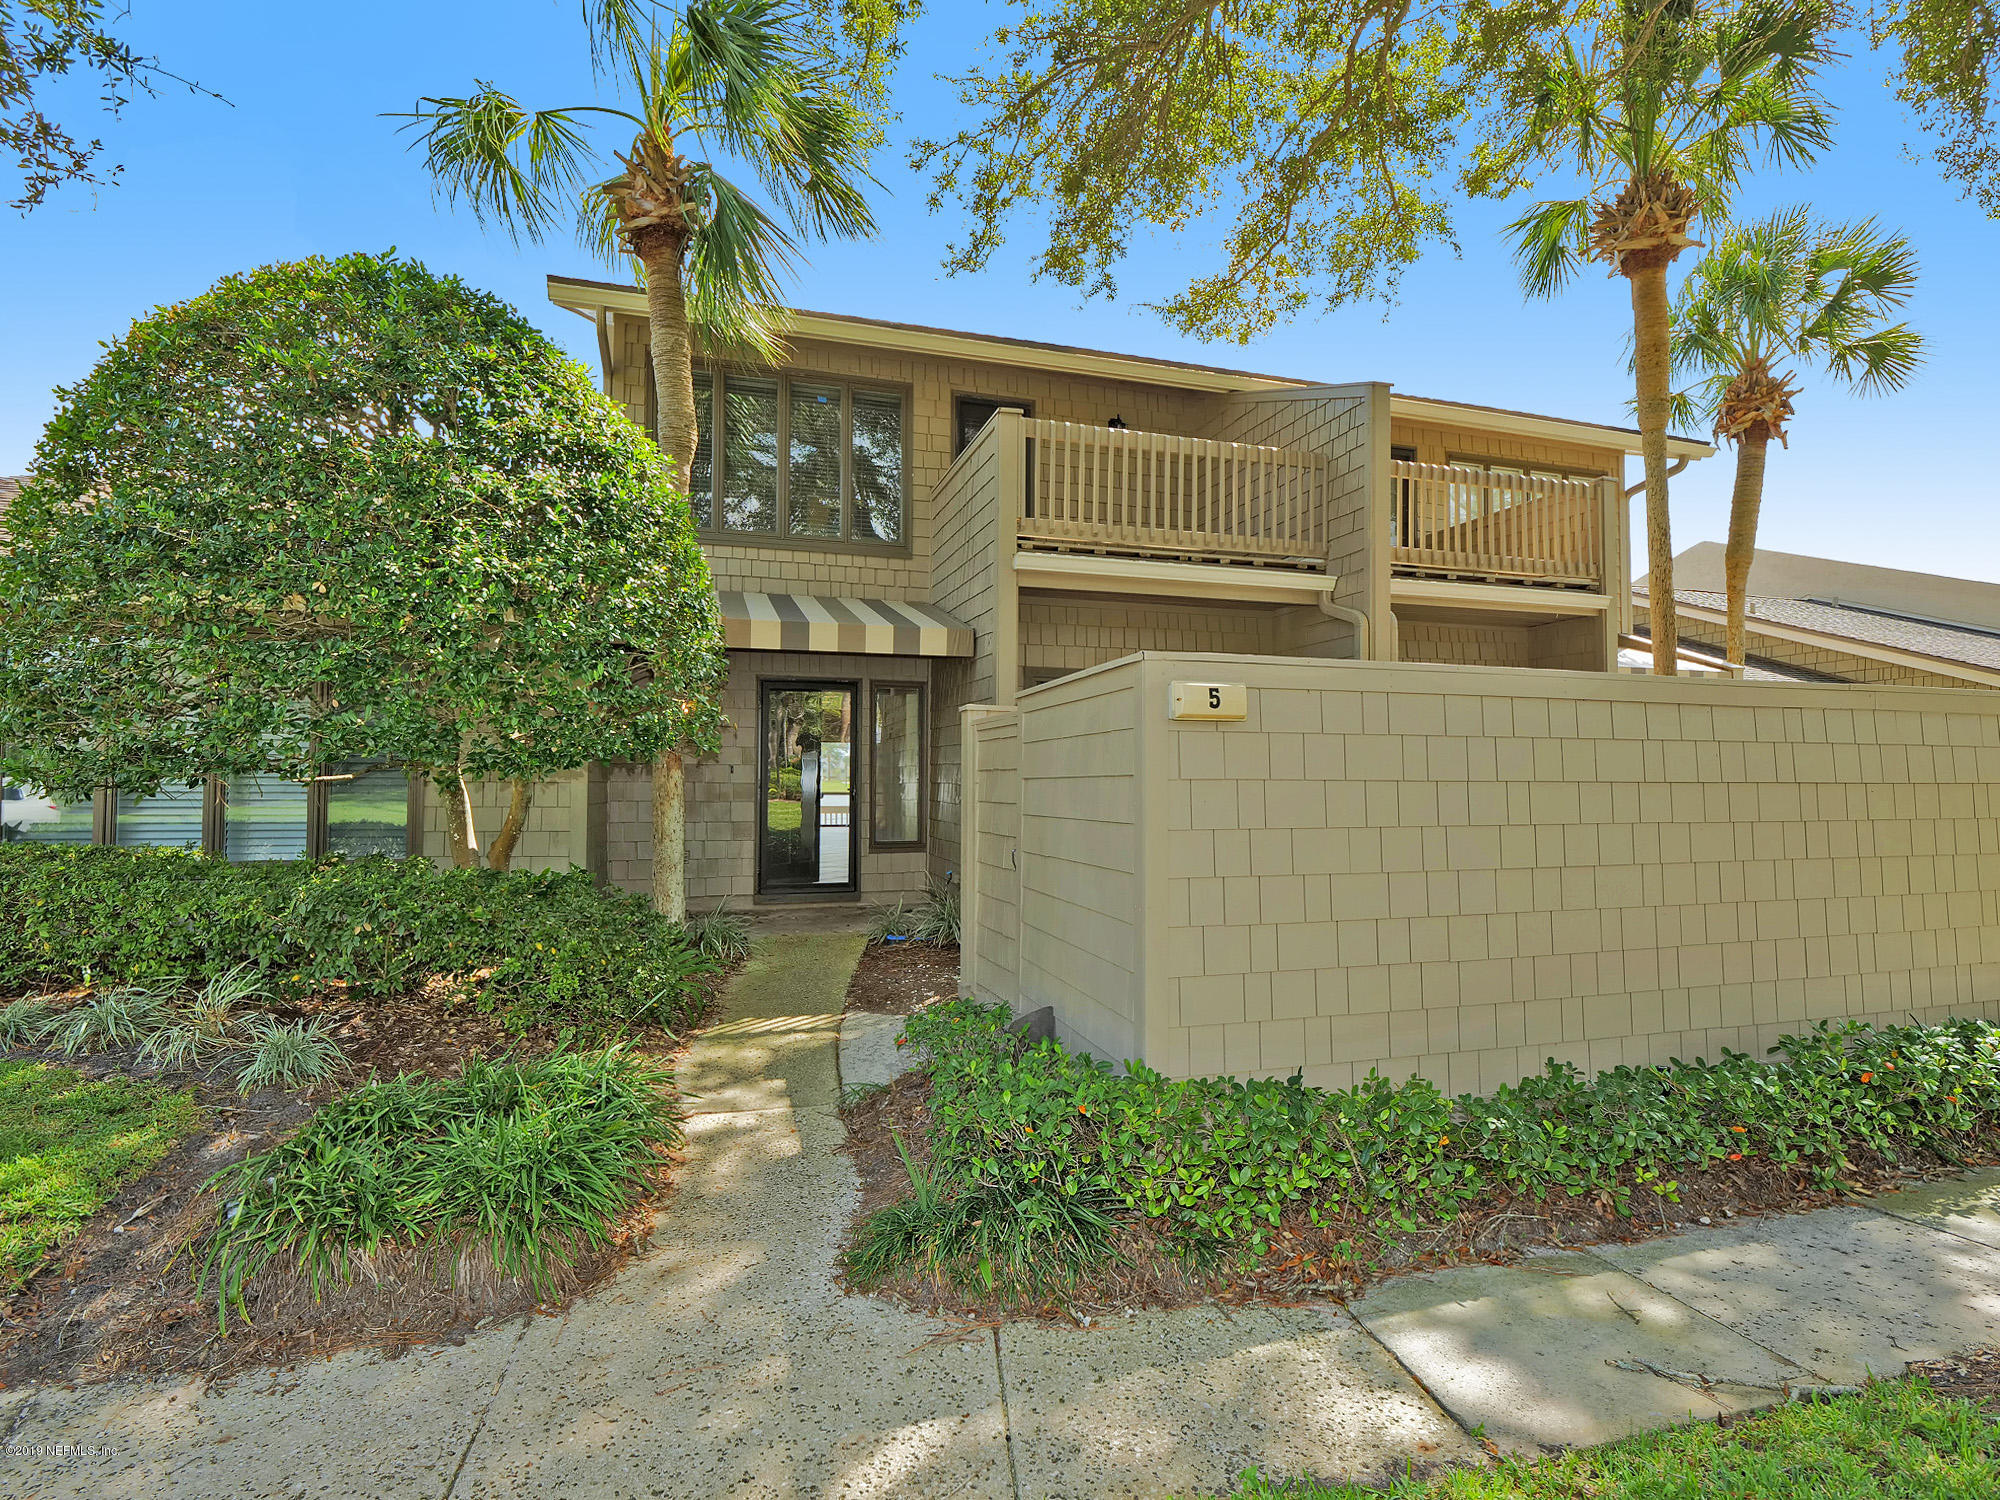 5 FISHERMANS COVE, PONTE VEDRA BEACH, FLORIDA 32082, 2 Bedrooms Bedrooms, ,2 BathroomsBathrooms,Residential - condos/townhomes,For sale,FISHERMANS COVE,1020269